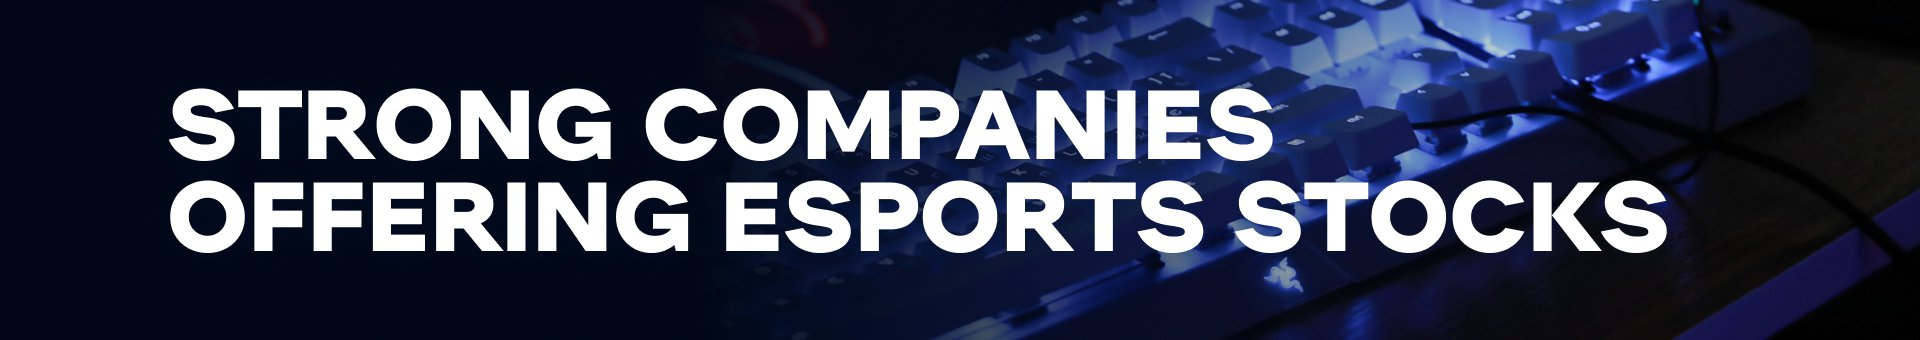 Strong companies offering esports stocks